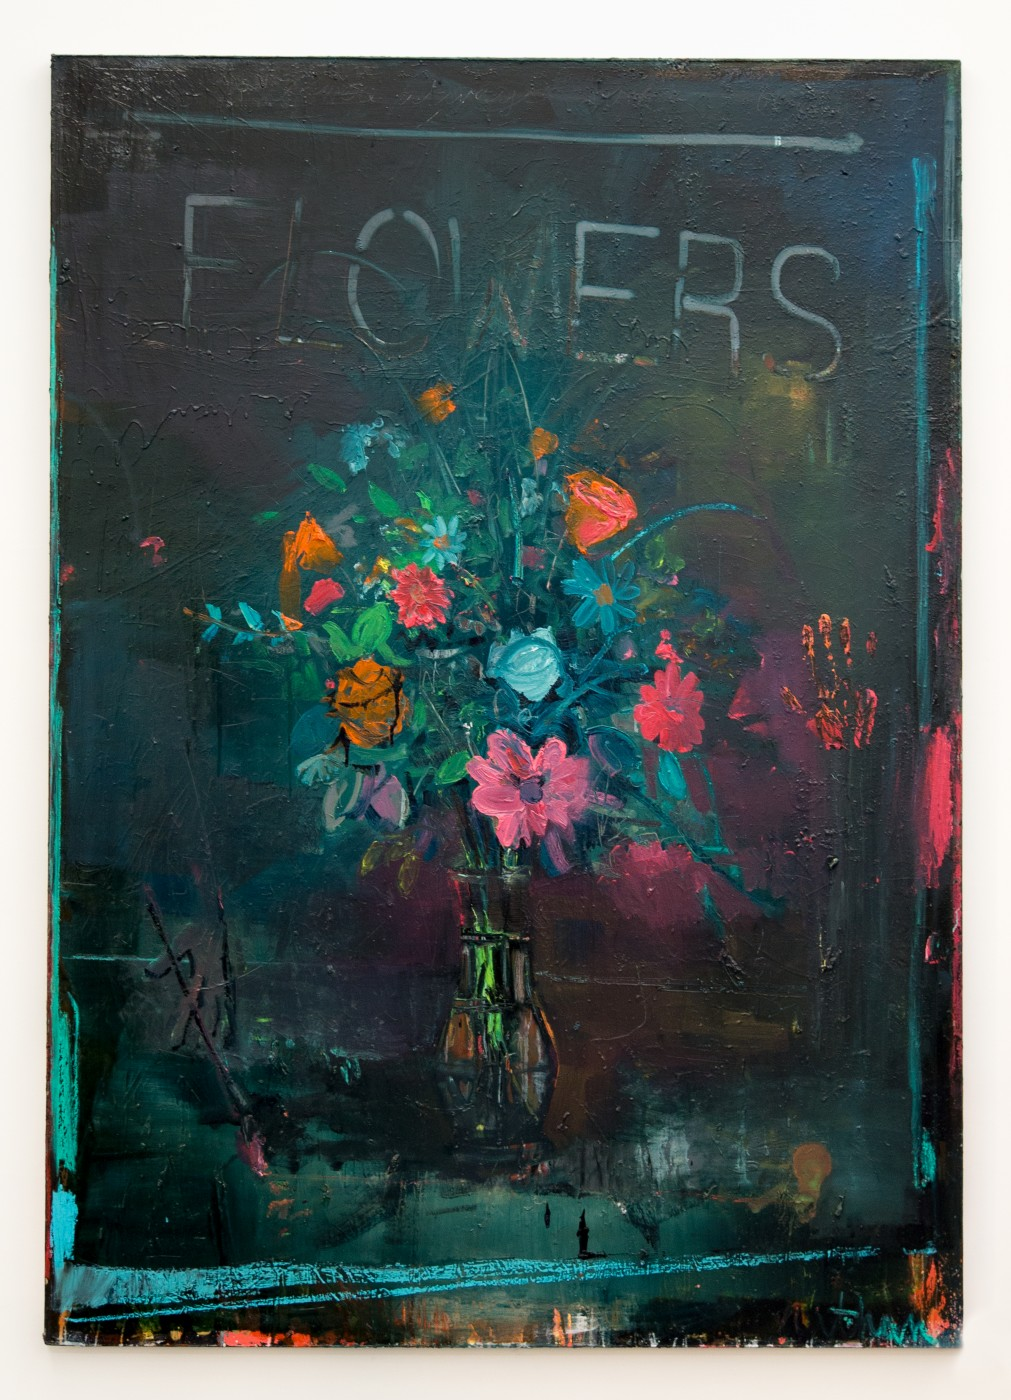 Chasser le dragon Nathan Zeidman  Flowers (light out)</I>, 2015 Oil on Canvas 180 x 127 cm / 70.9 x 50 in